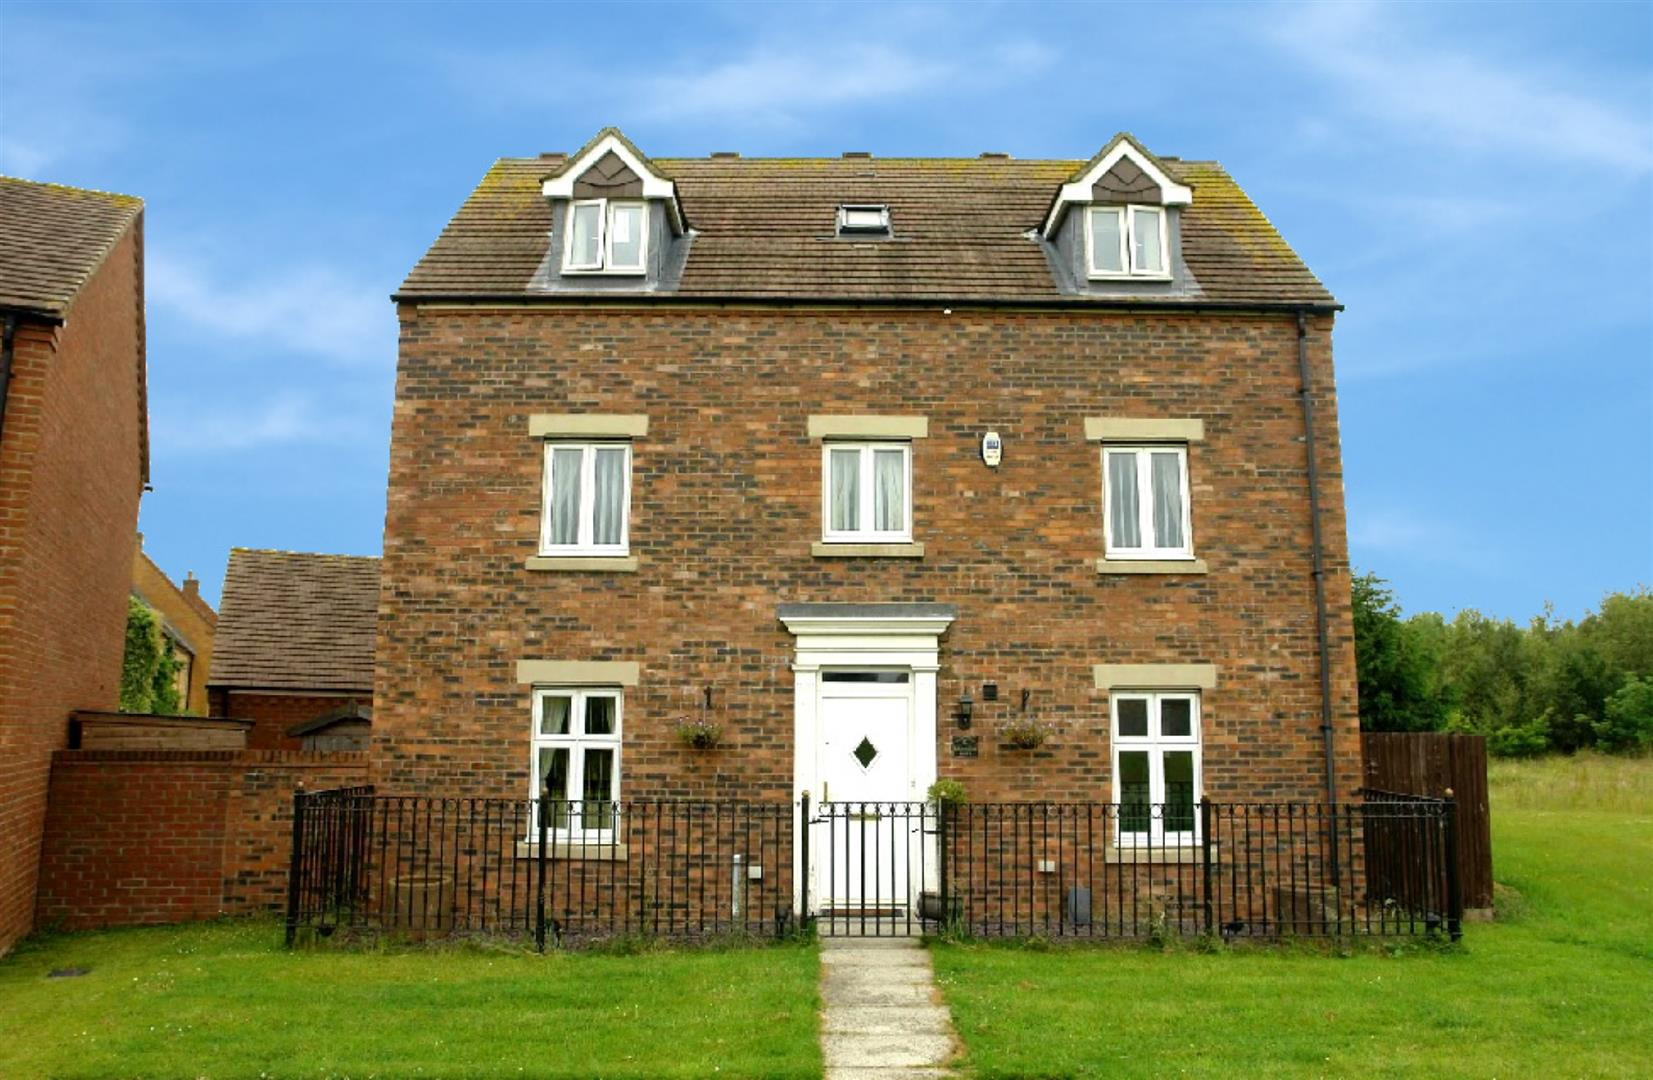 Bedroom detached house for sale in newcastle upon tyne